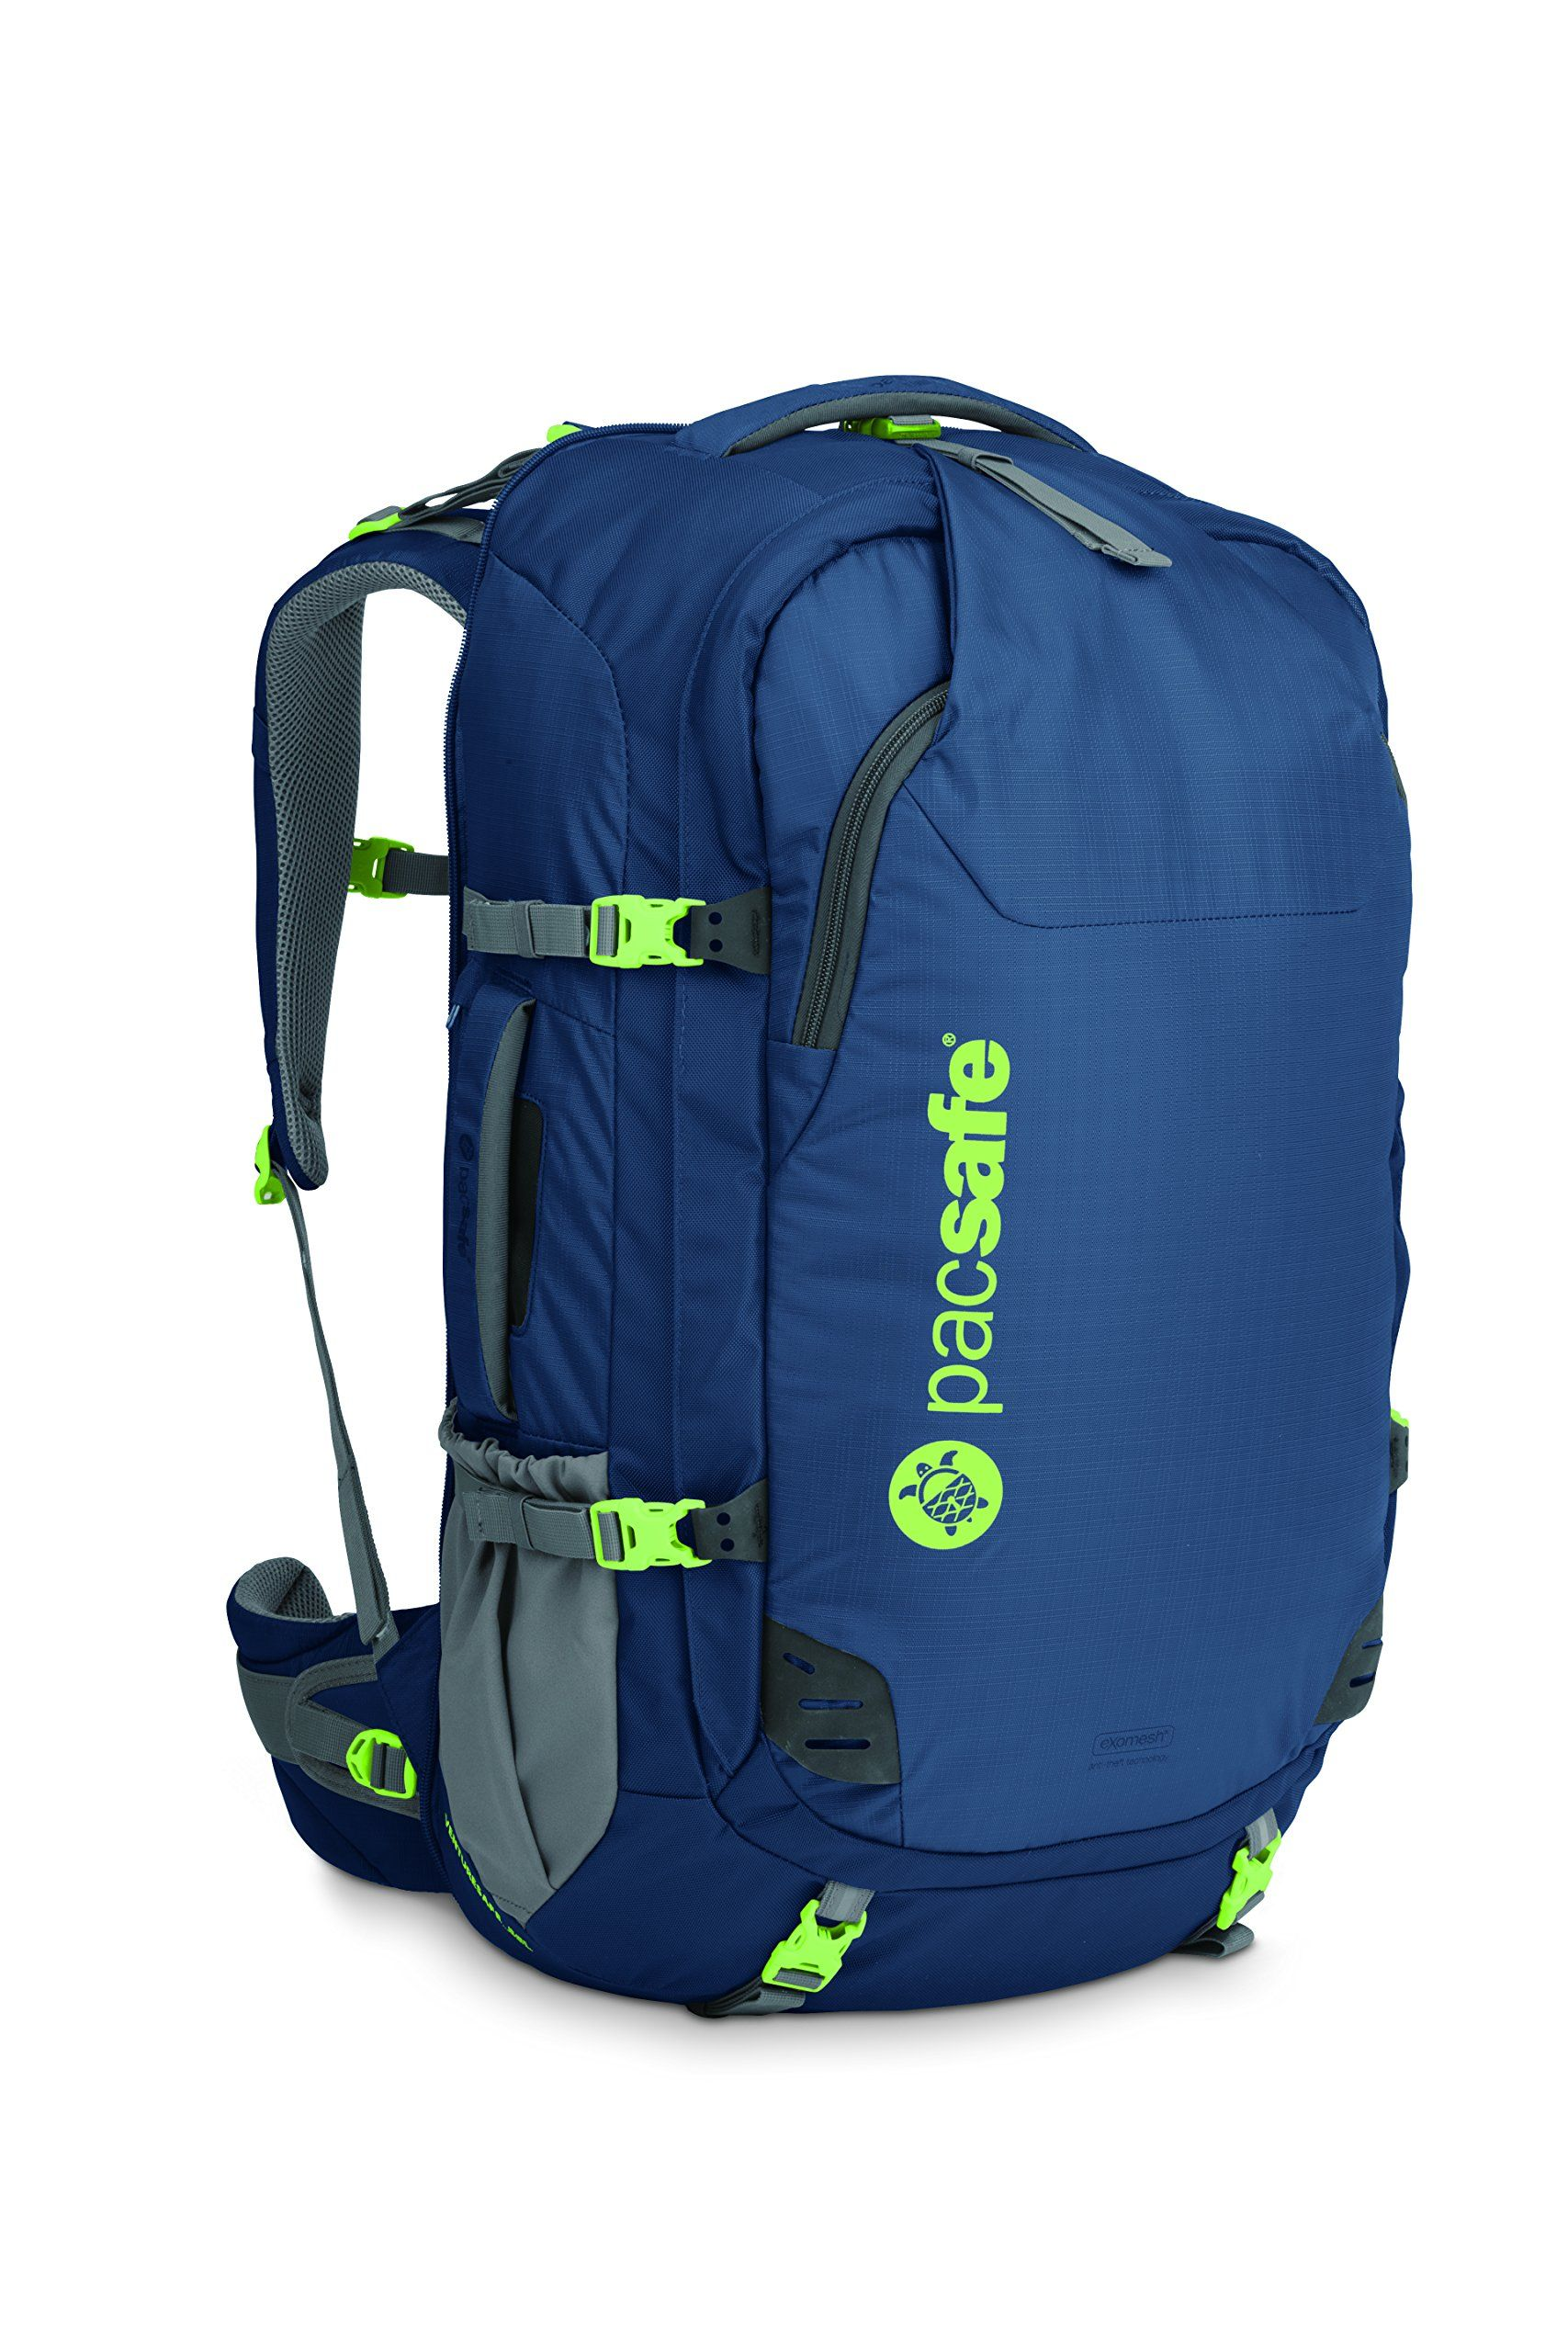 Pacsafe Venturesafe 55L GII Anti-Theft Travel Pack bf552ce2ac297